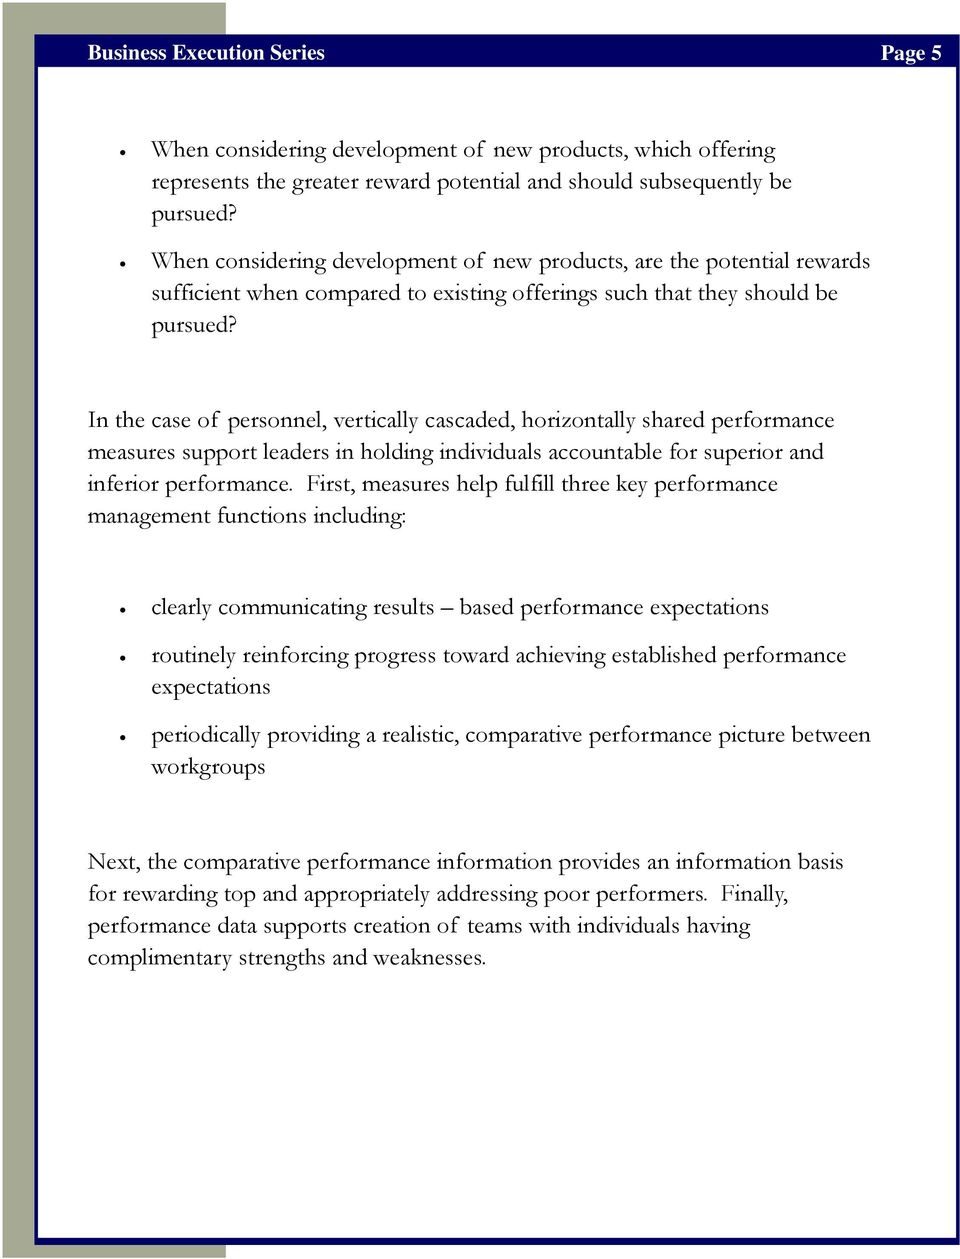 In the case of personnel, vertically cascaded, horizontally shared performance measures support leaders in holding individuals accountable for superior and inferior performance.